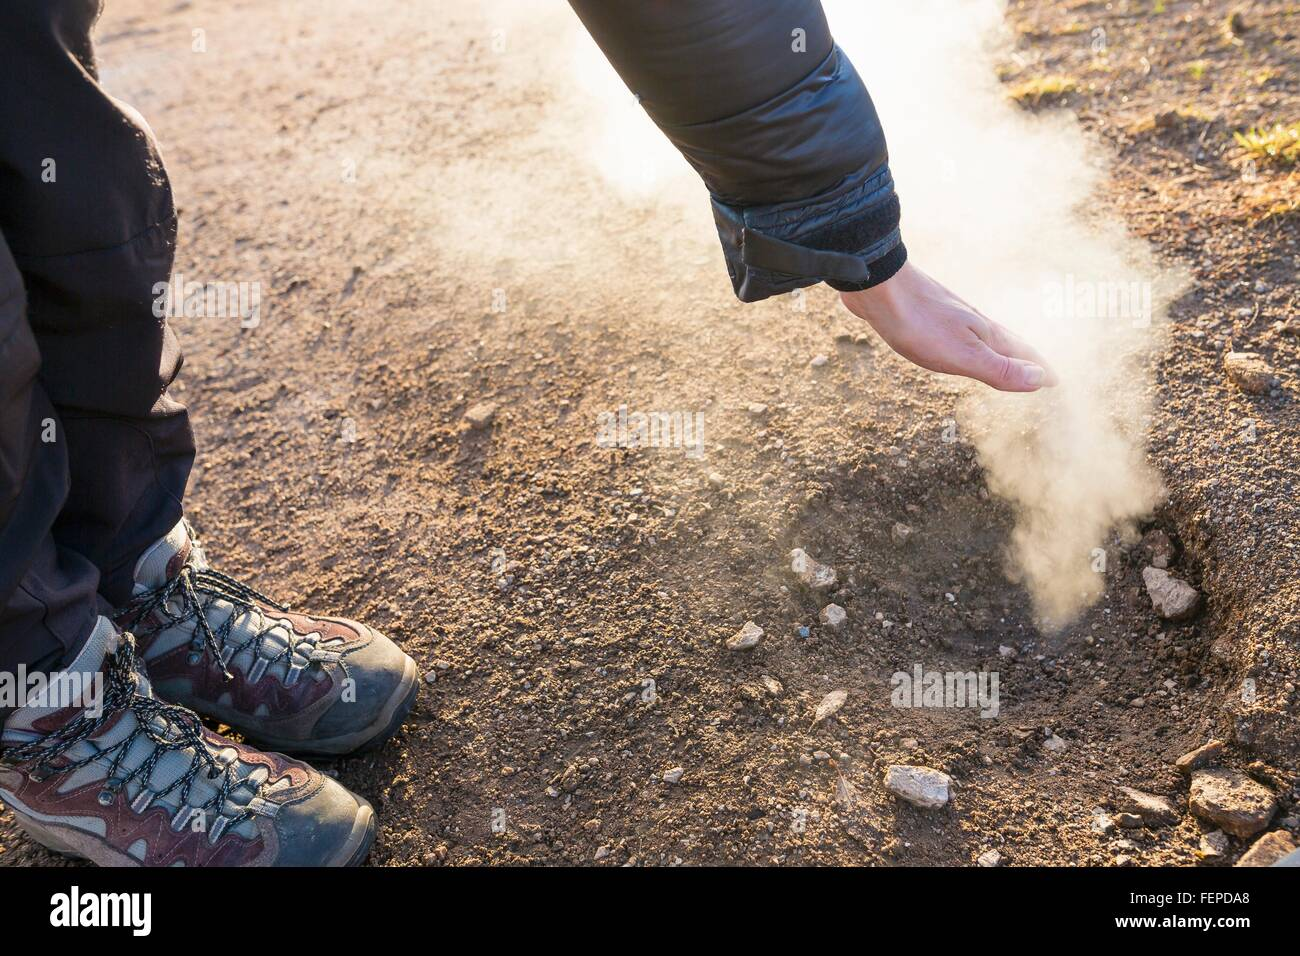 Woman, hand over small vent in the area of The Great Geysir, Haukadalur valley, South West Iceland - Stock Image